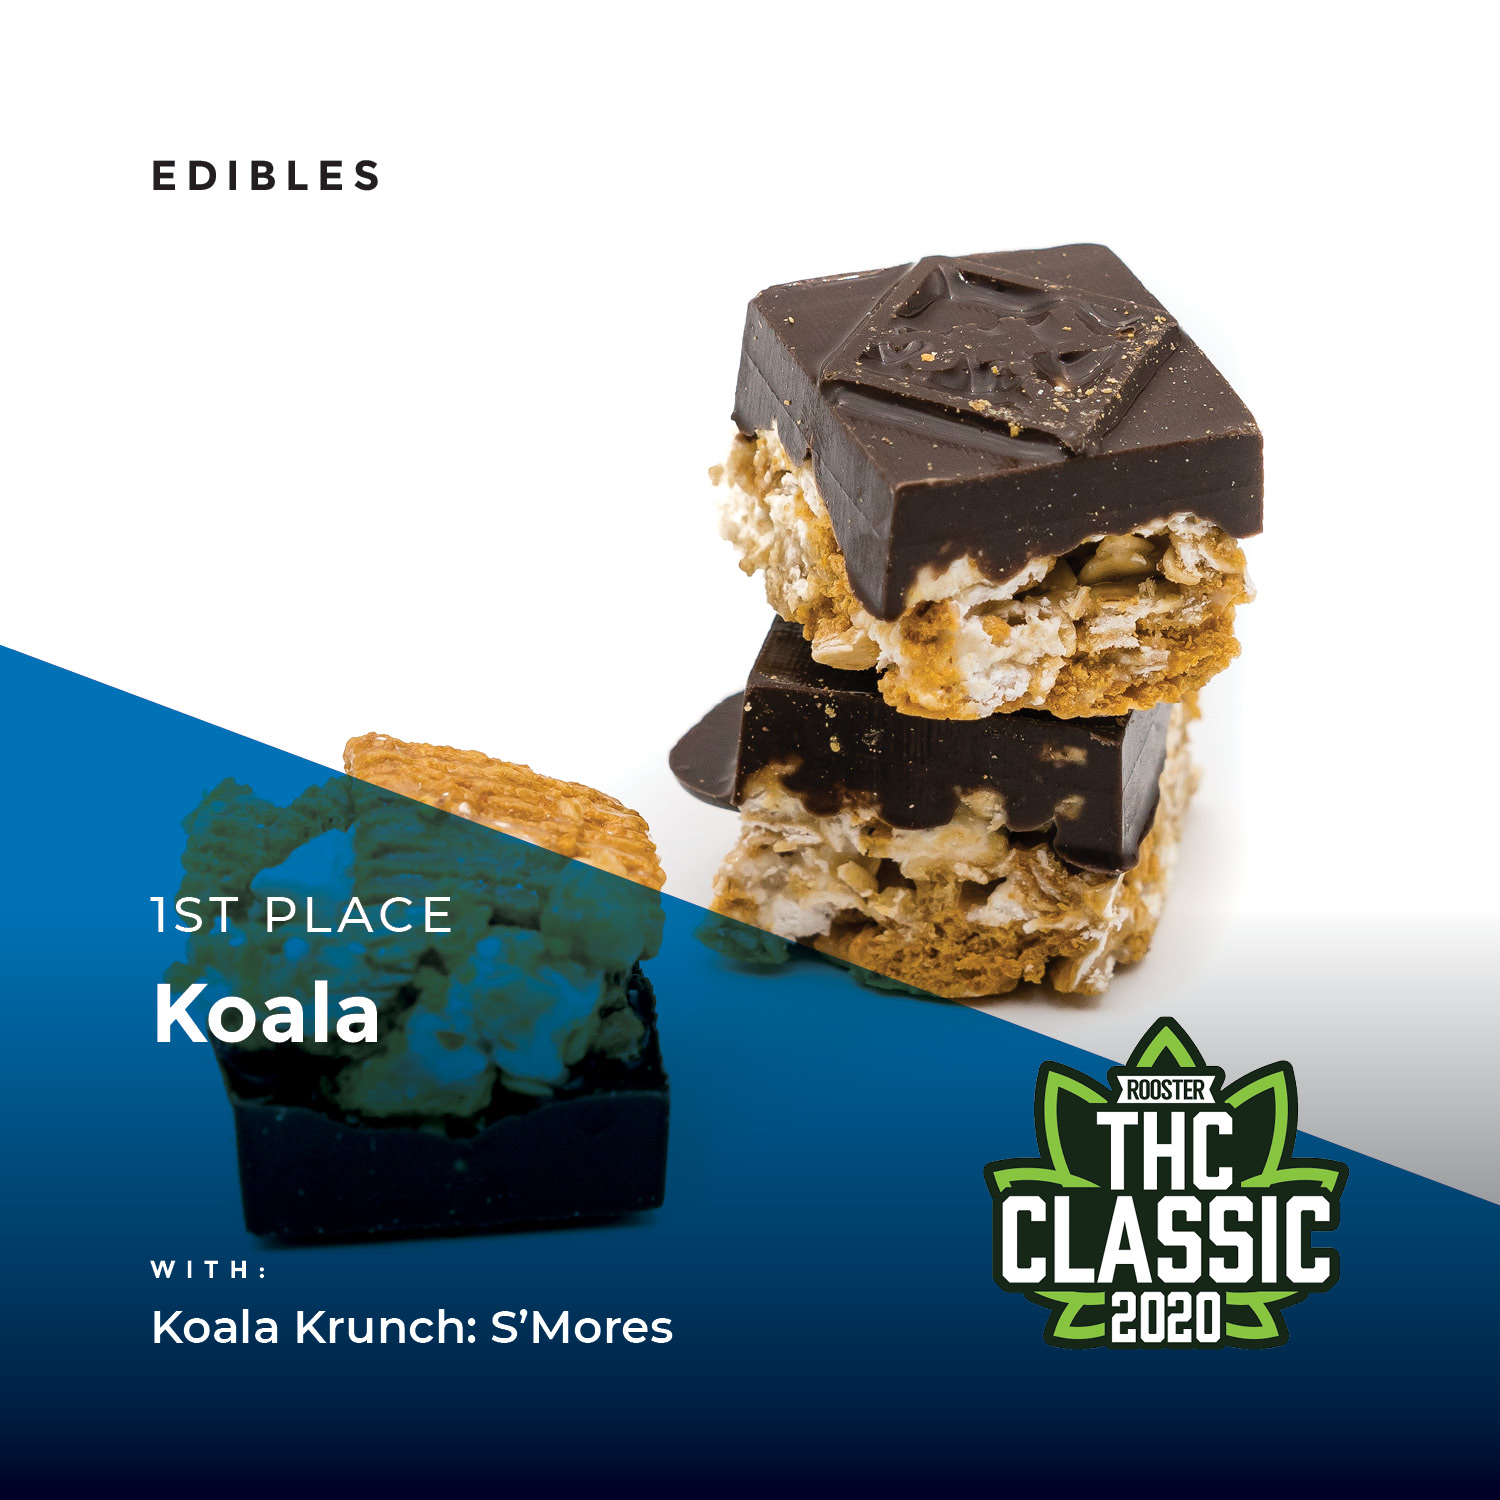 Best Colorado Cannabis Products: Edibles